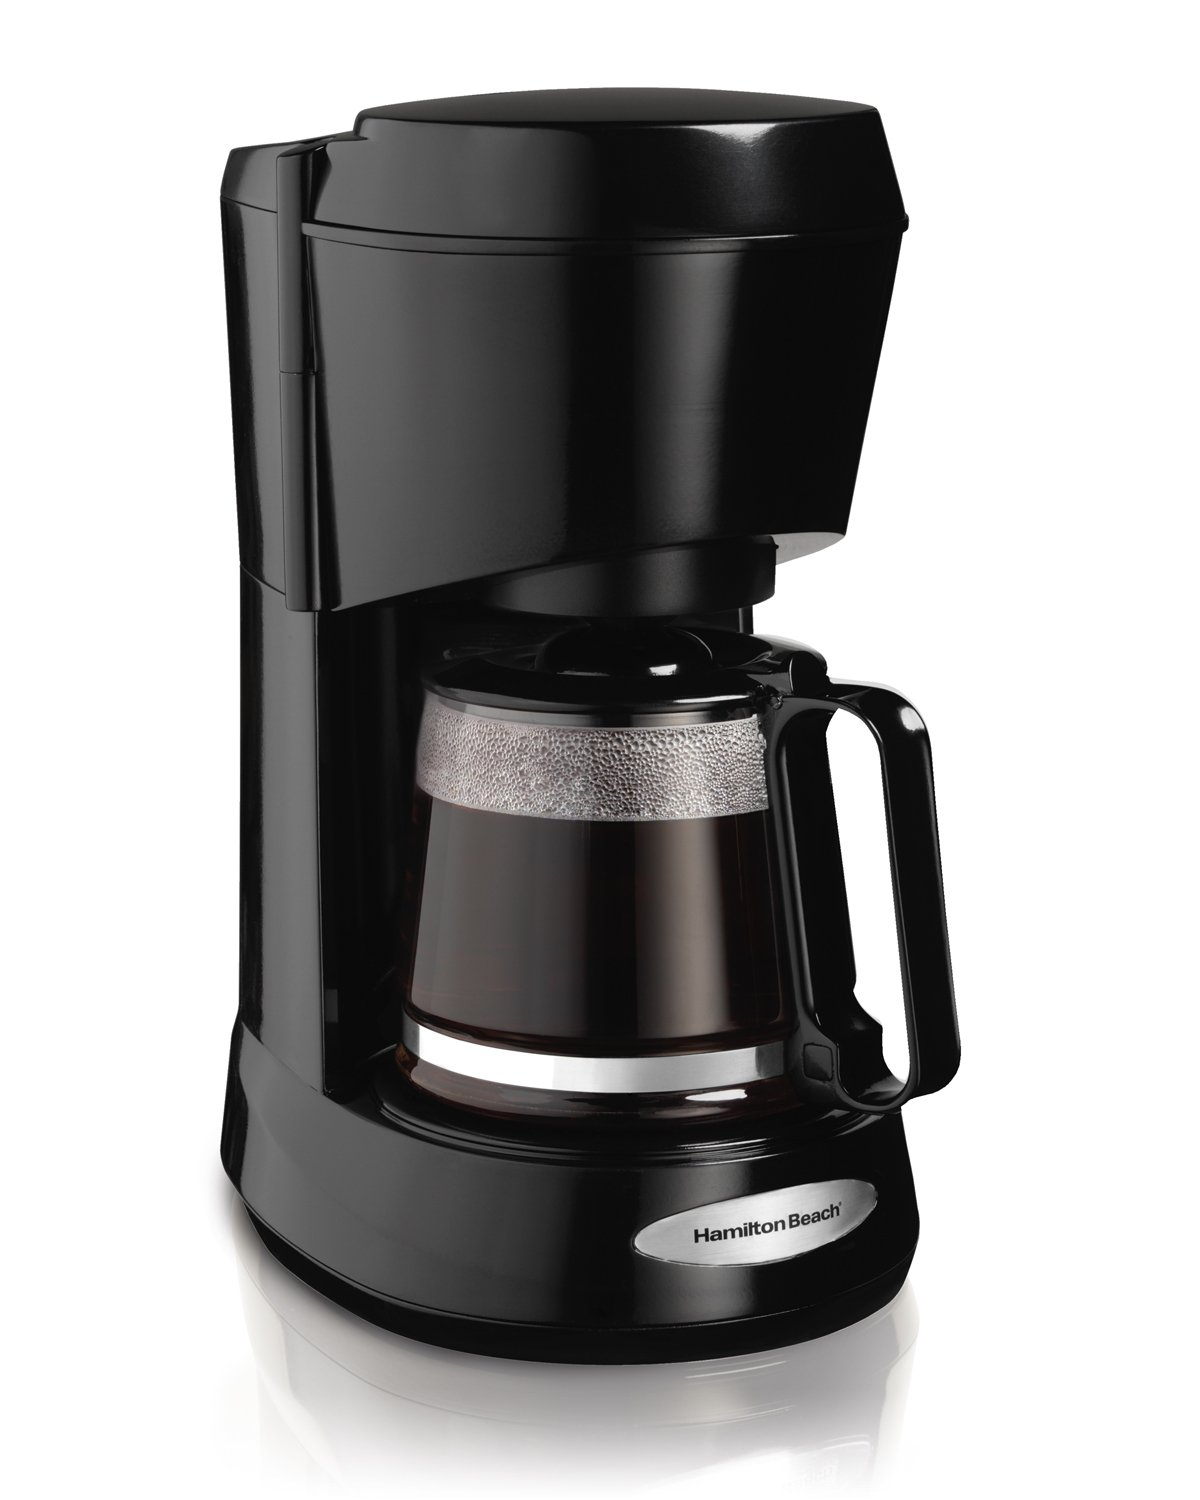 Hamilton Beach 5-Cup Switch Coffee Maker, Works with Smart Plugs, Compatible with Alexa, Google Home, Black (48136) by Hamilton Beach